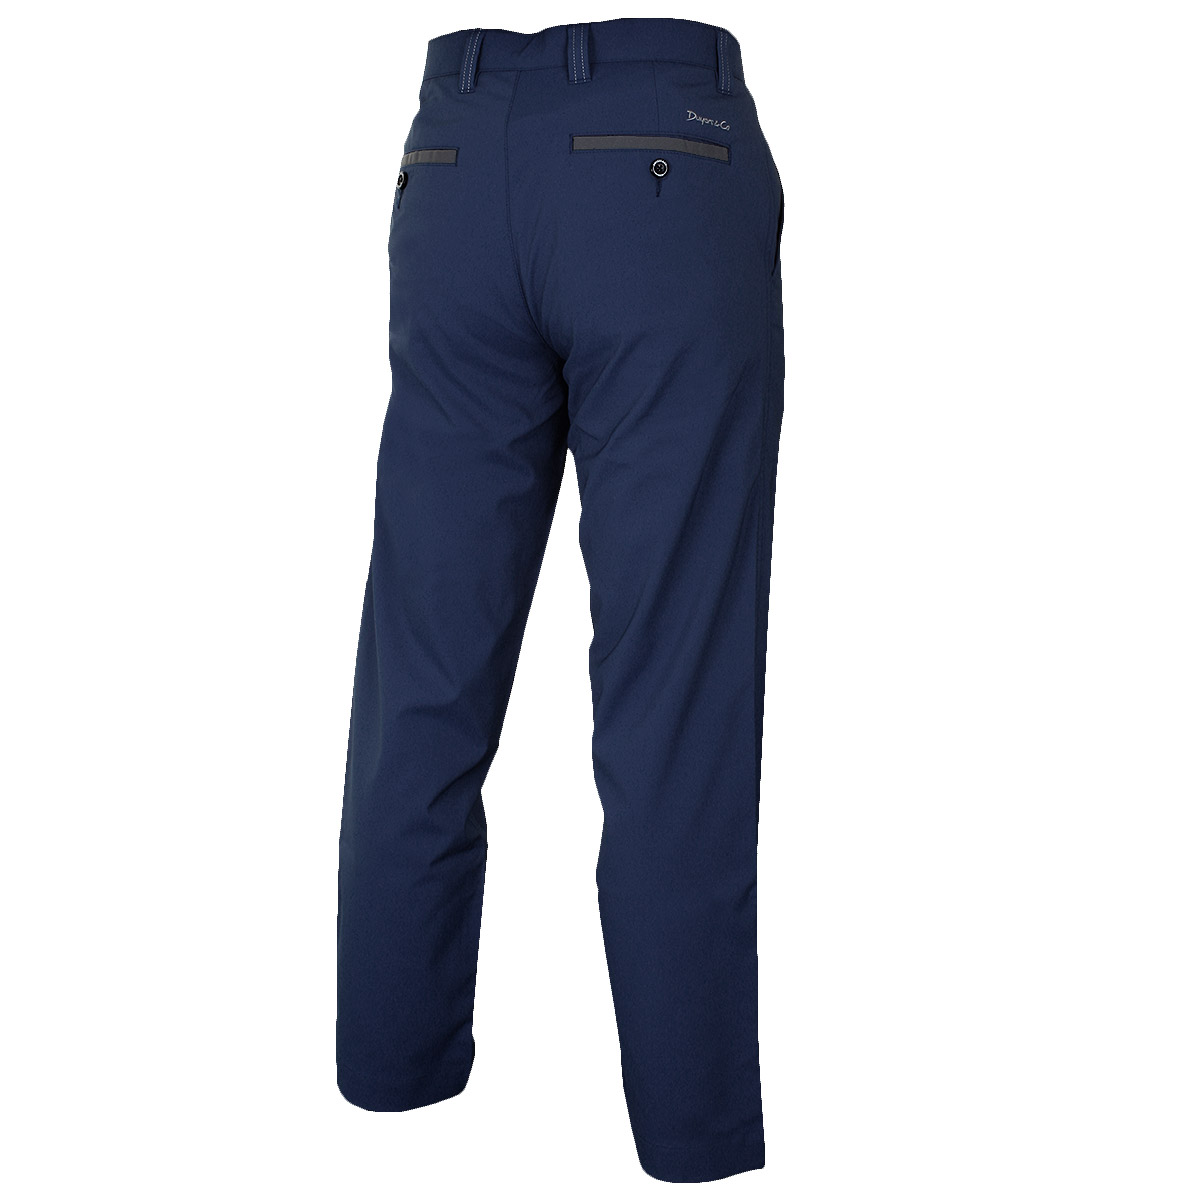 Dwyers-amp-Co-Mens-Matchplay-Stretch-Lightweight-Golf-Trousers-38-OFF-RRP thumbnail 31